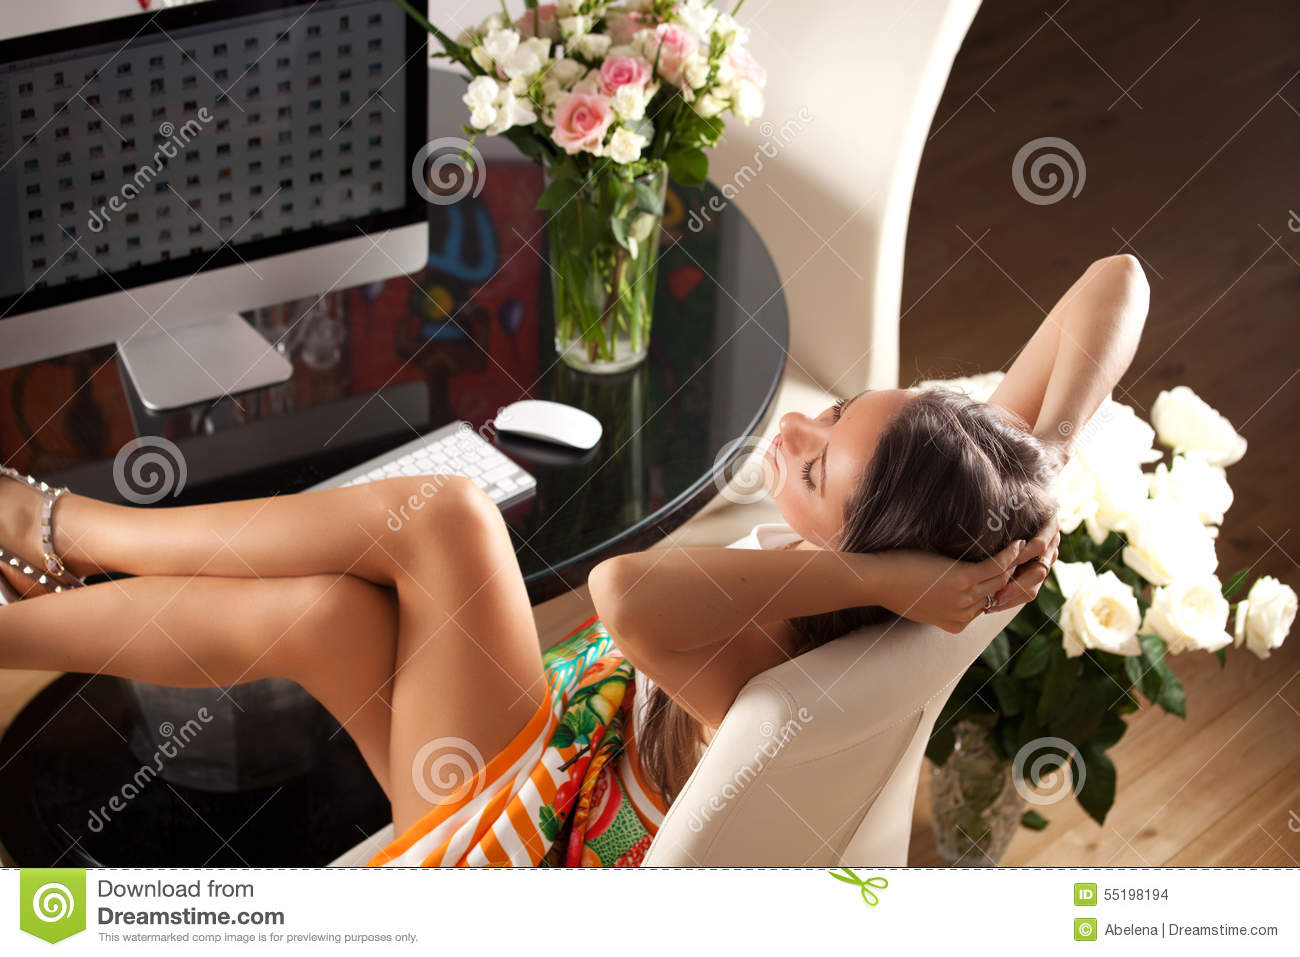 How to relax after a hard day How to learn to relax Tips from a psychologist 61